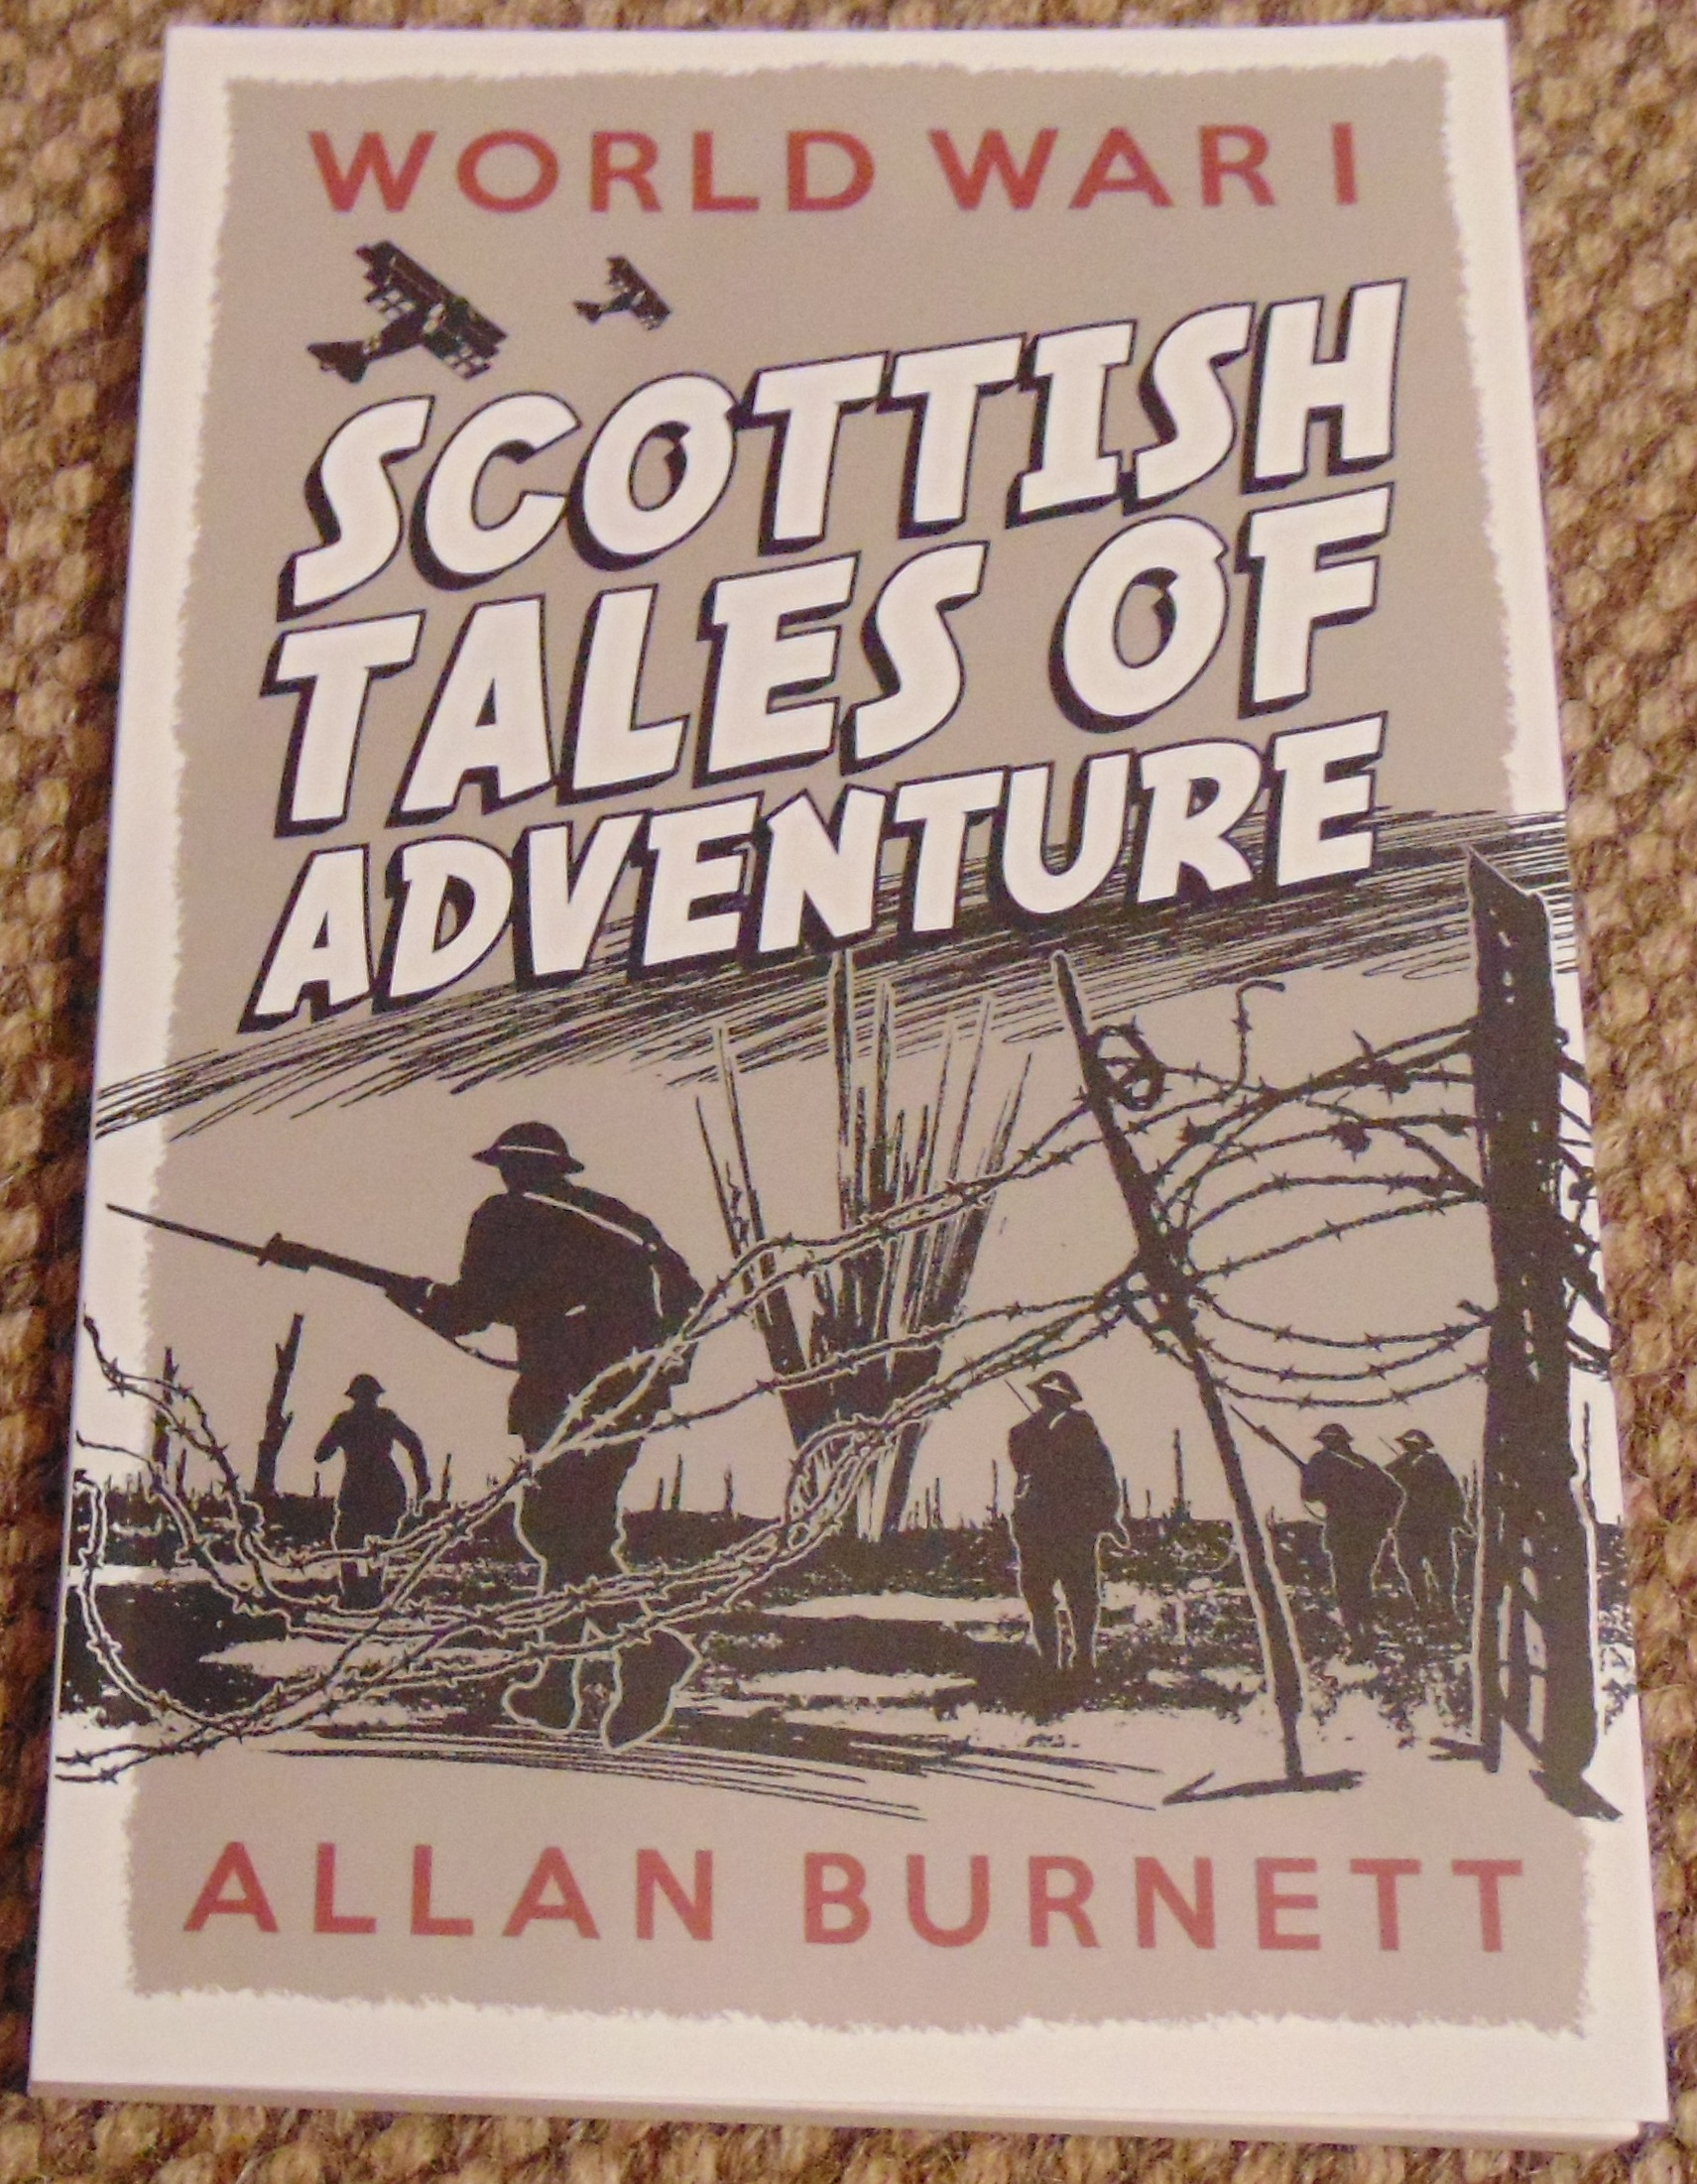 WW1 Scottish Tales of Adventure